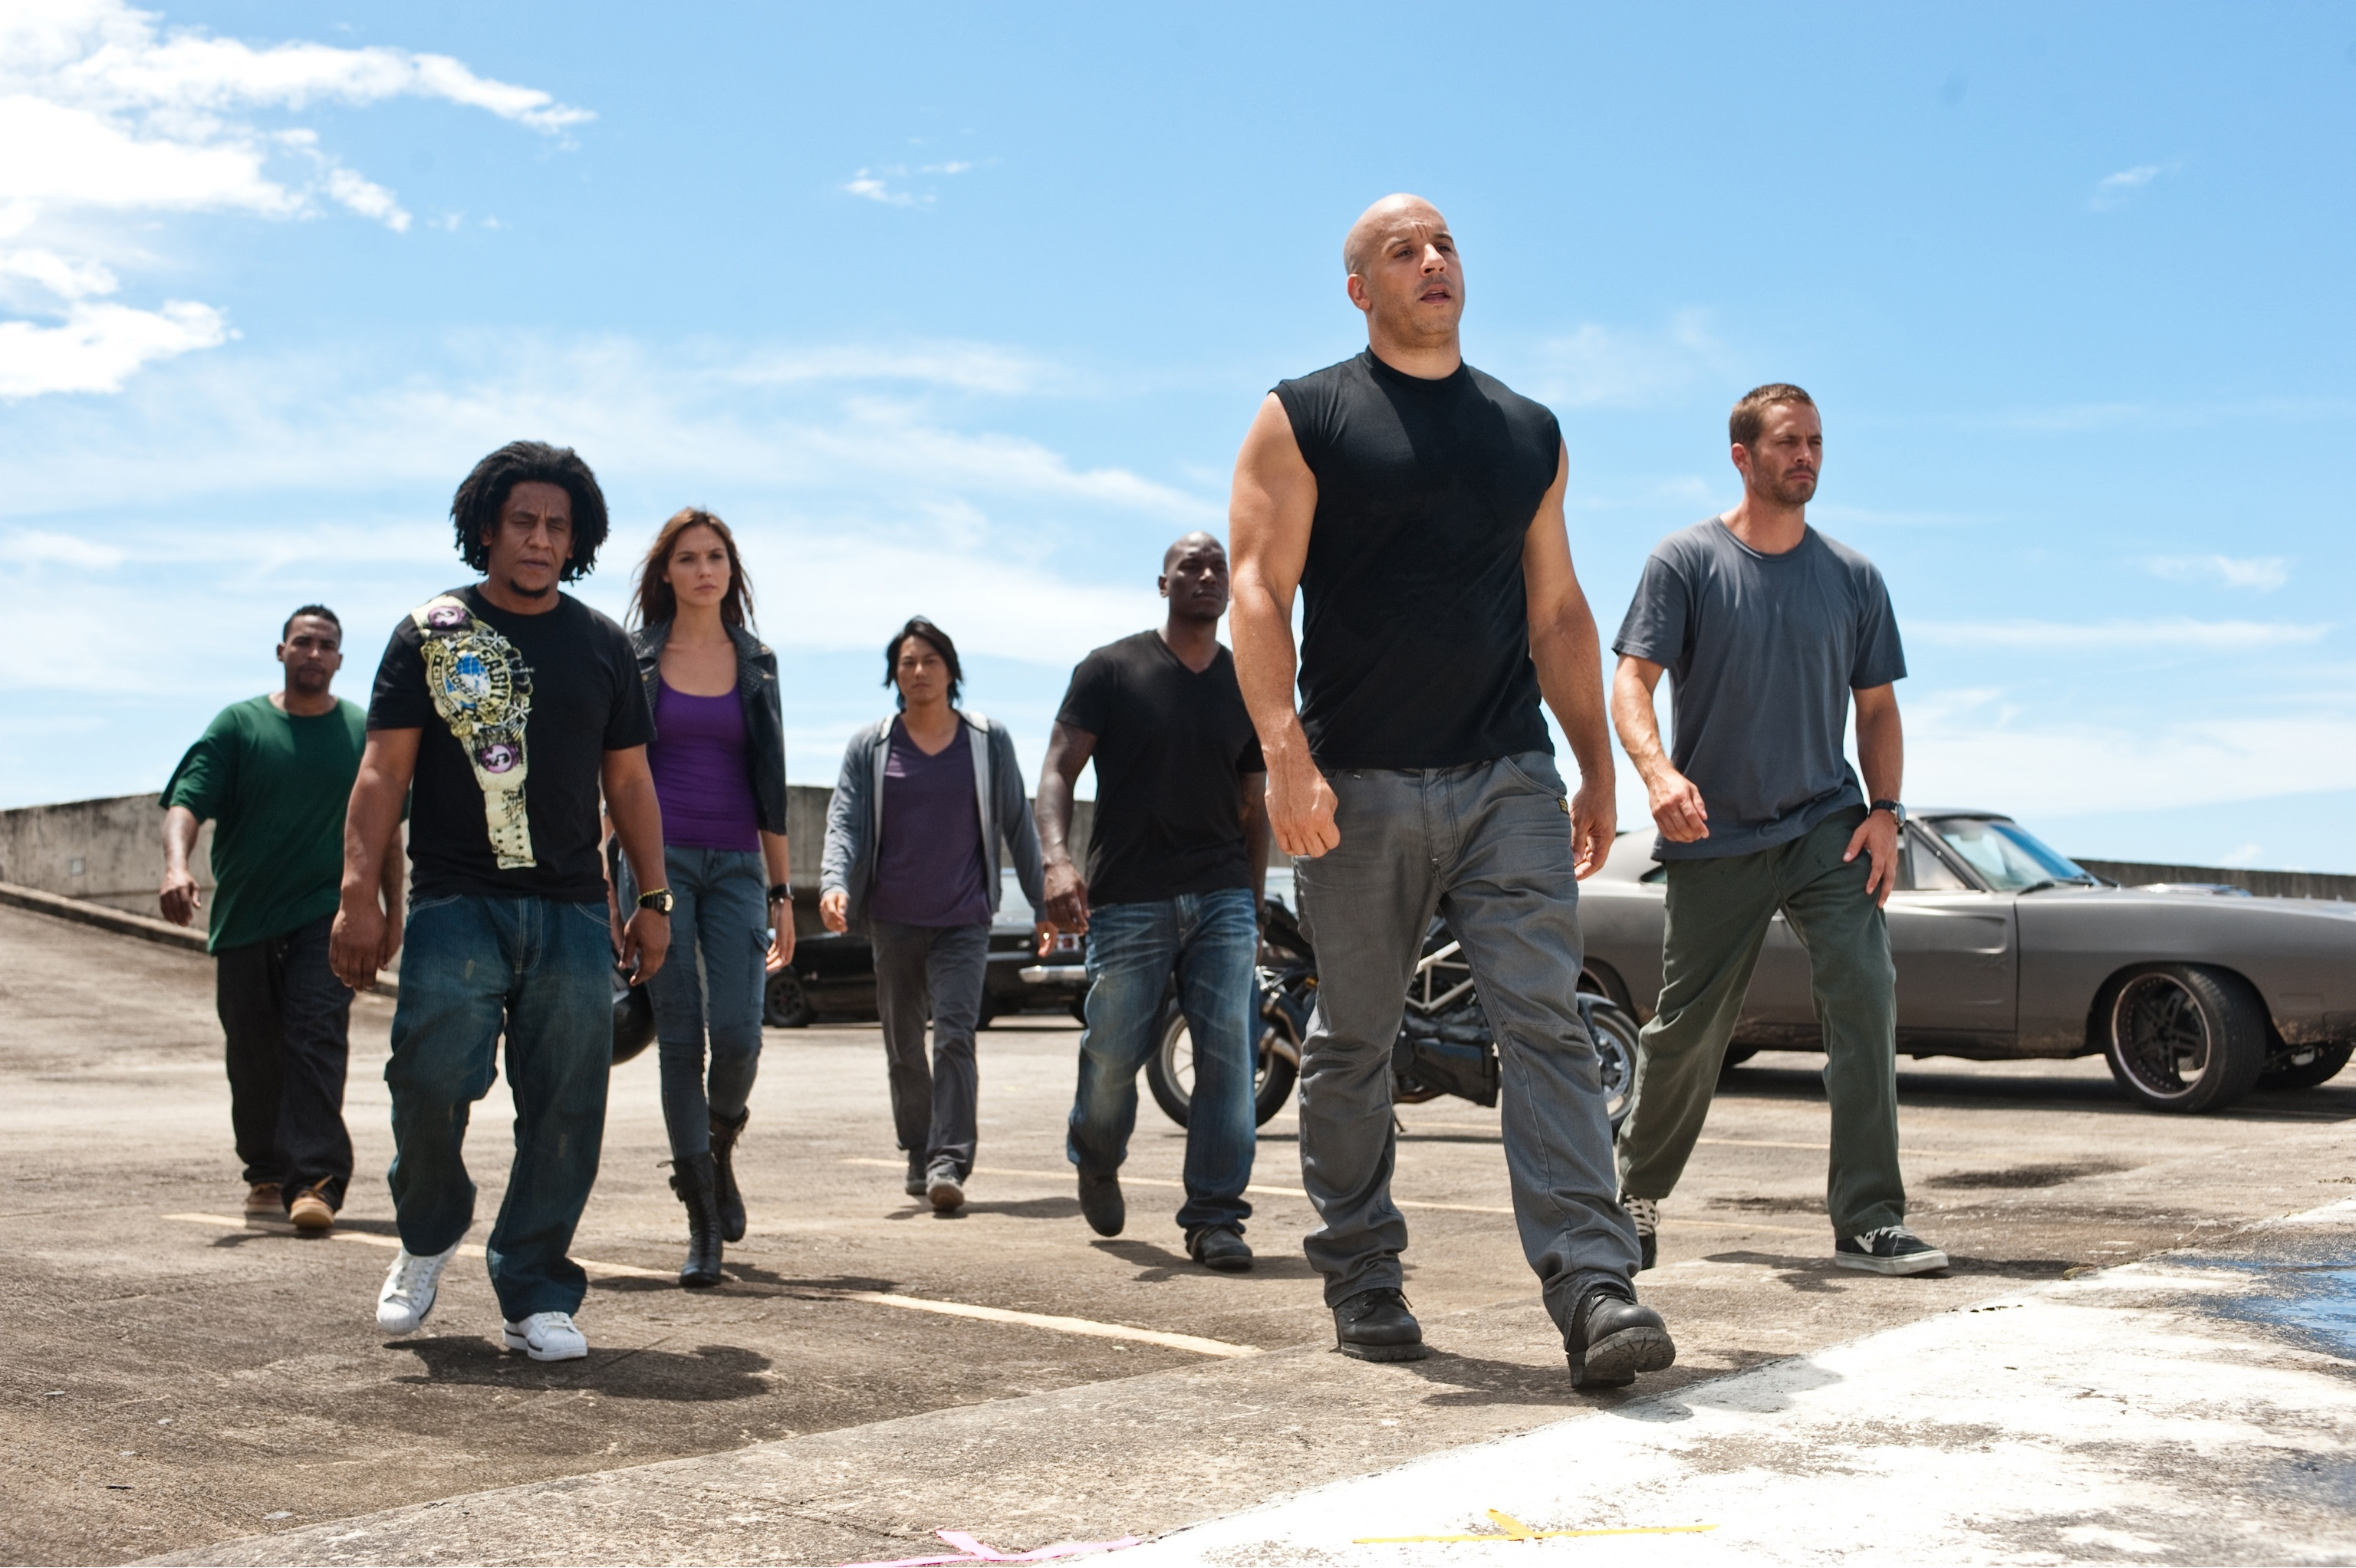 Resultado de imagen para Fast and Furious 5 - Operation Rio